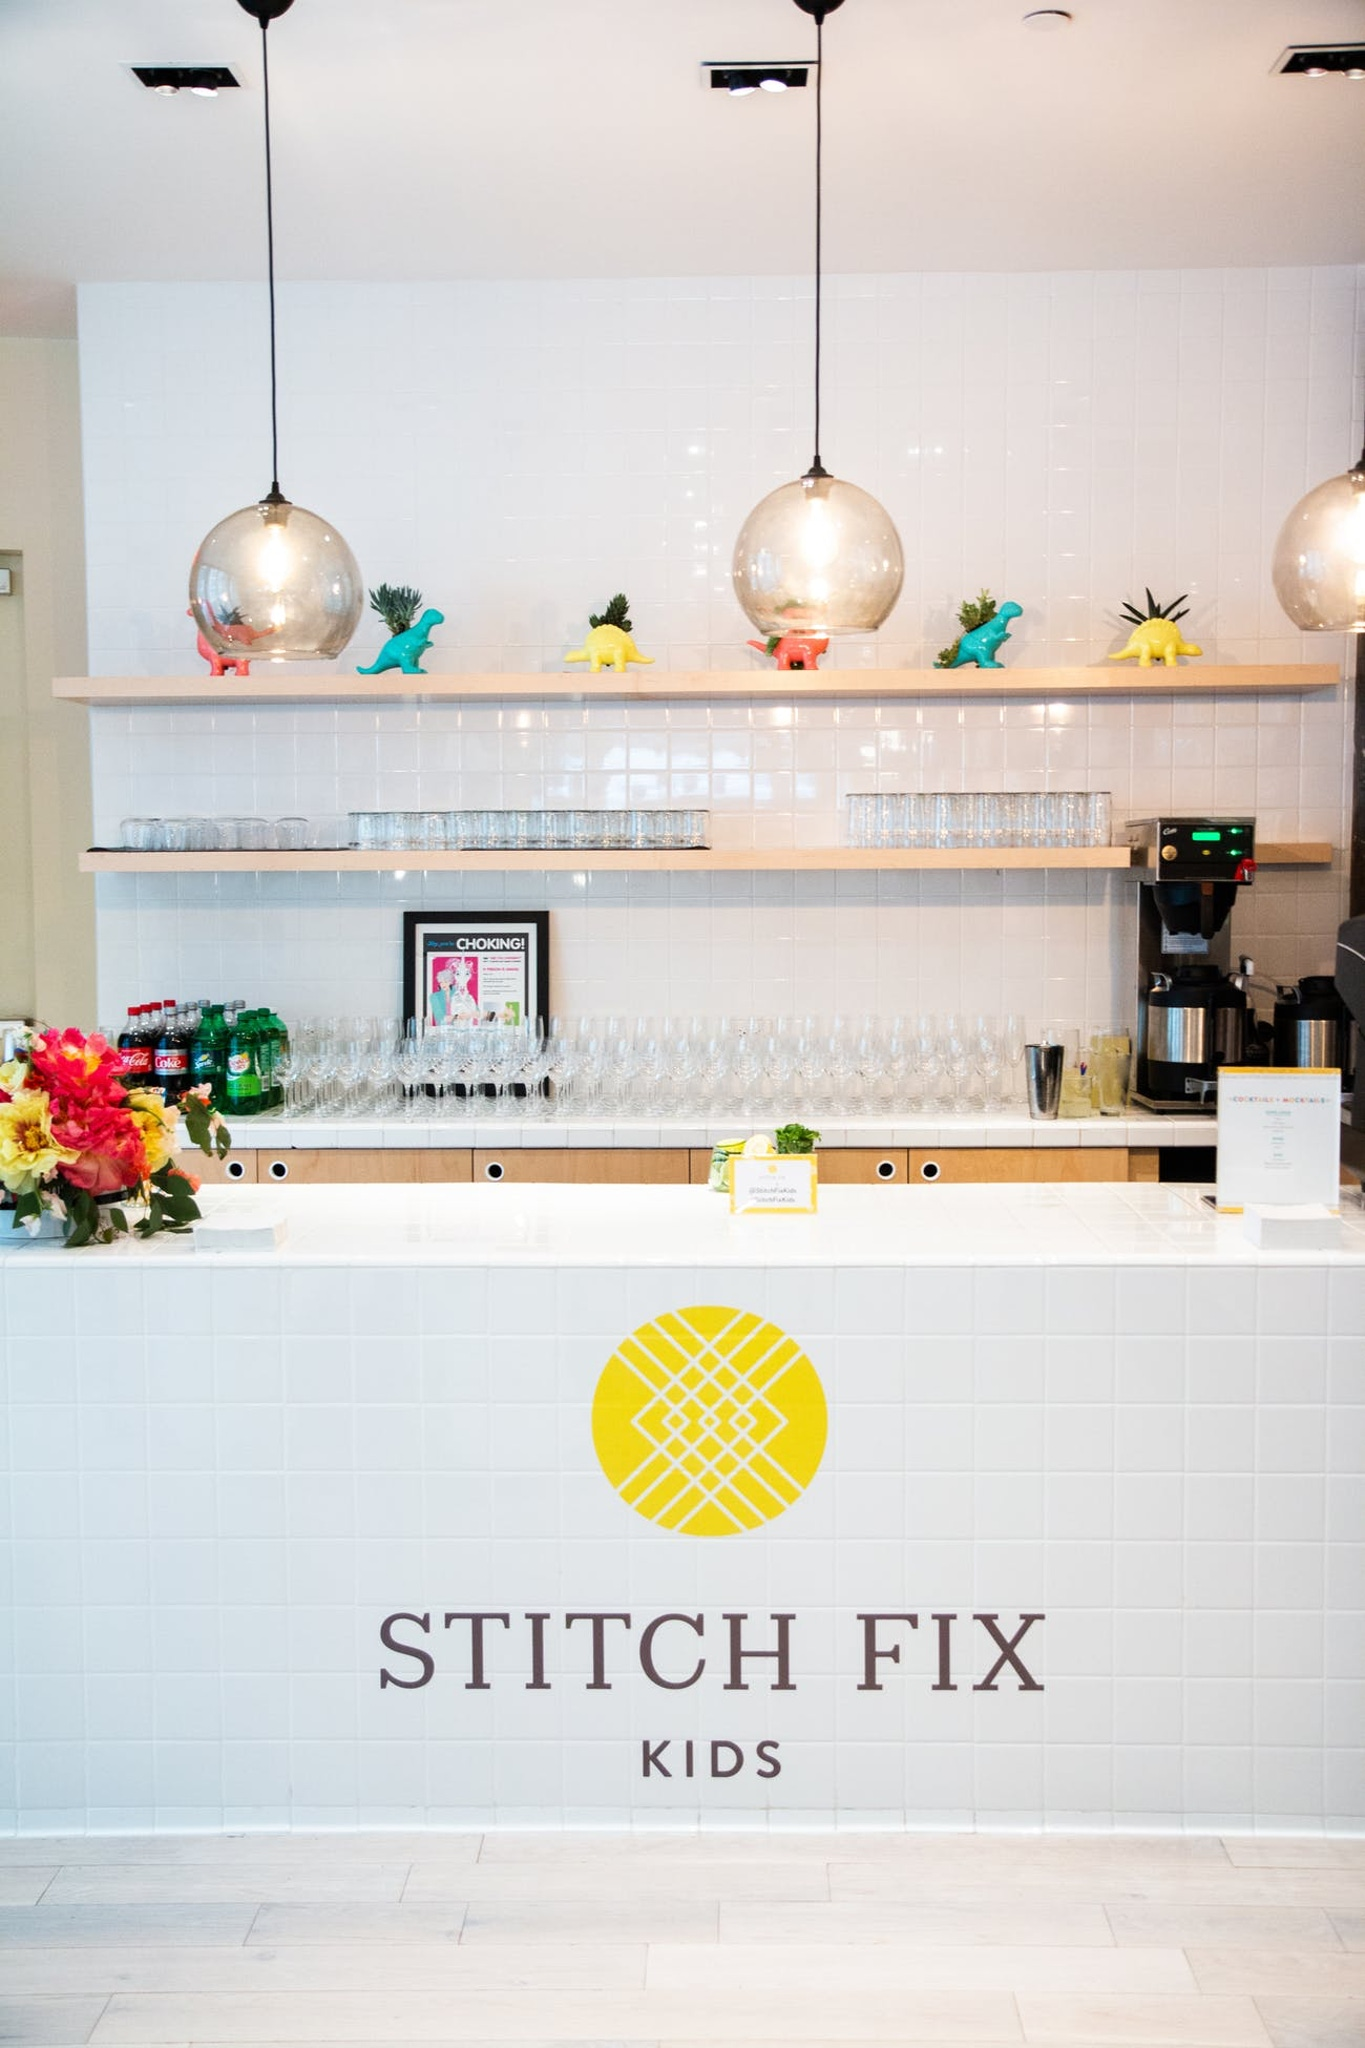 Stitch Fix pajama party event for kids and parents with branded soda bar